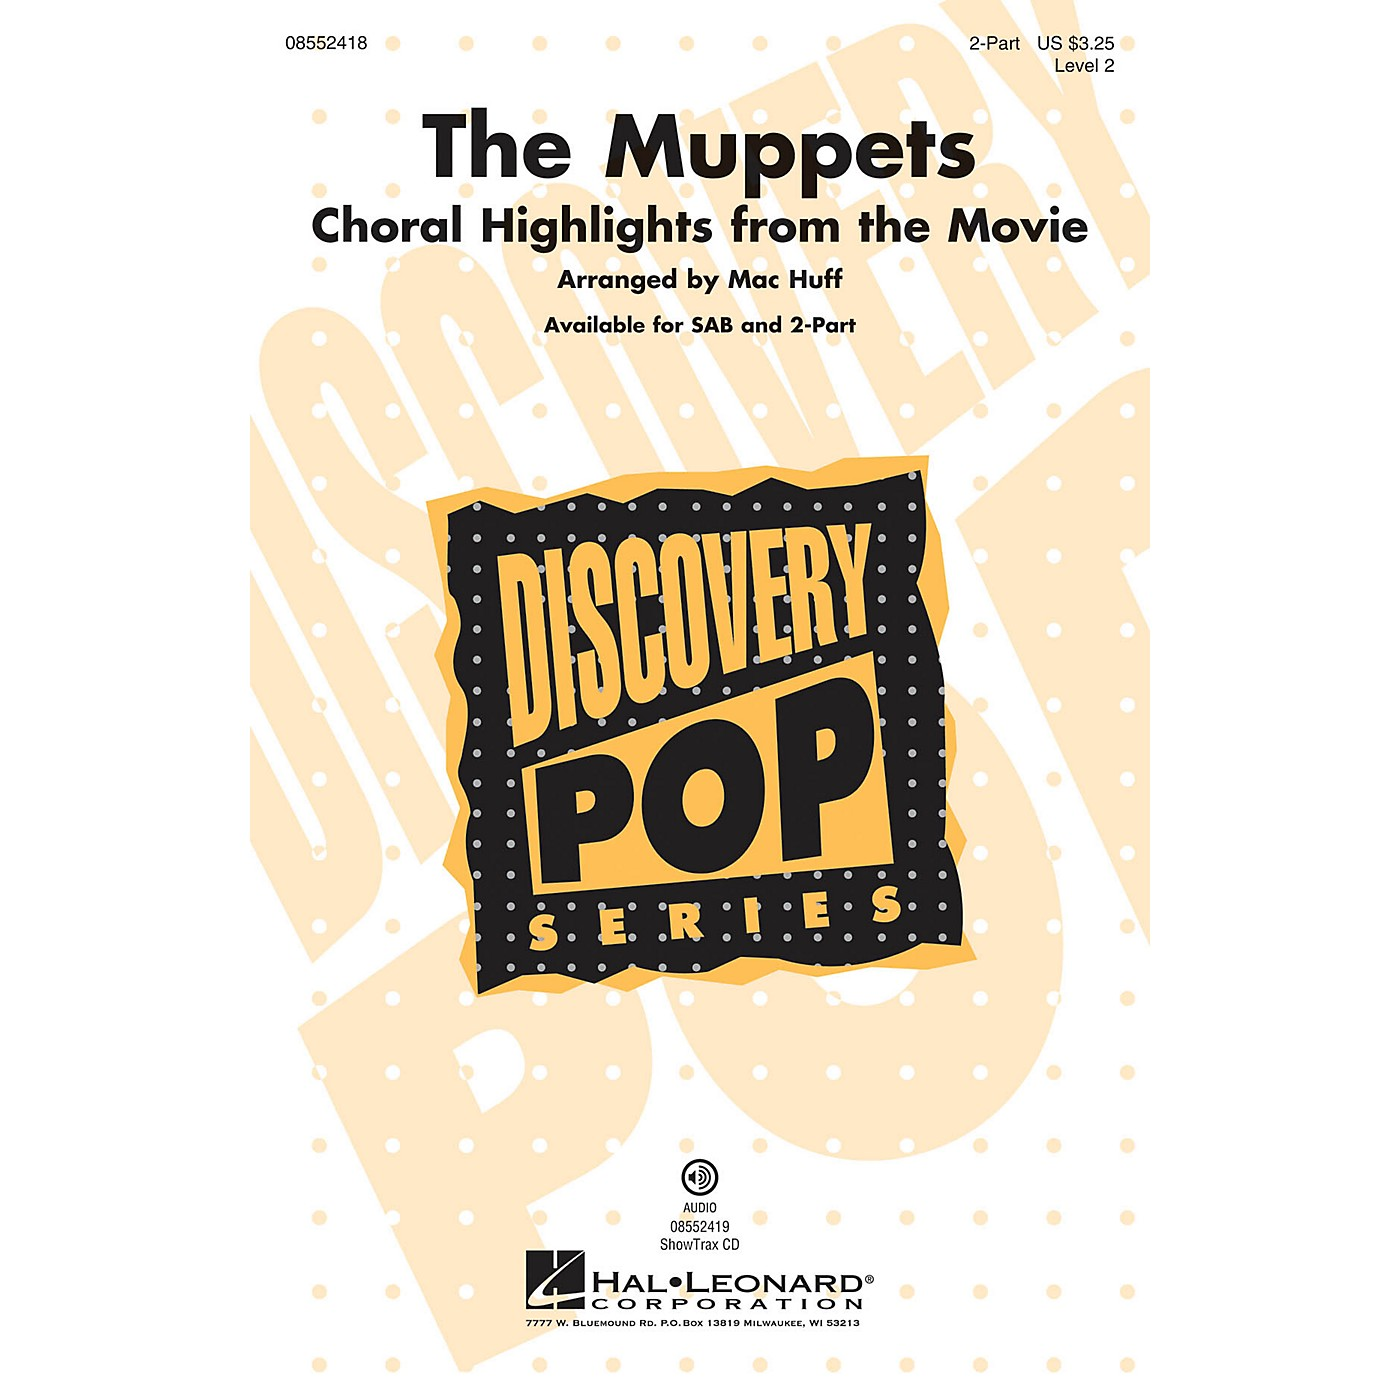 Hal Leonard The Muppets (Choral Highlights from the Movie) 2-Part arranged by Mac Huff thumbnail